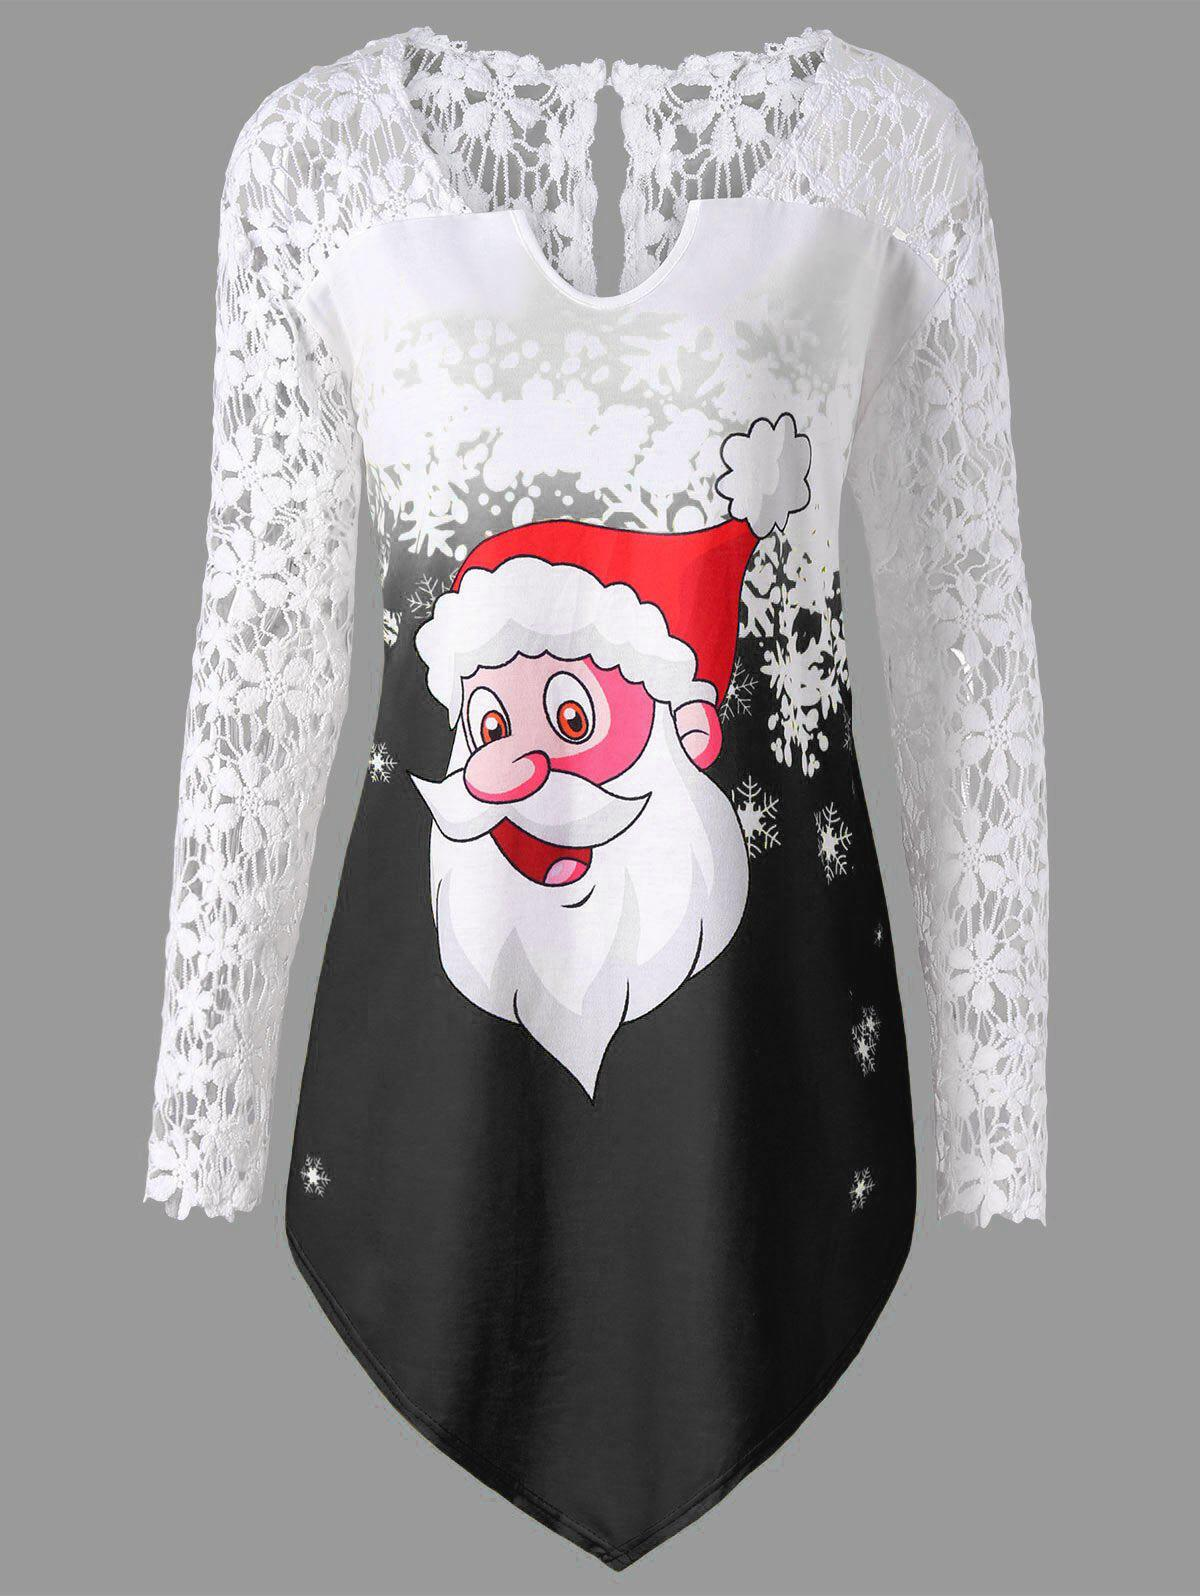 Christmas Plus Size Lace Panel Santa Claus T-shirt sheer lace panel plus size leggings